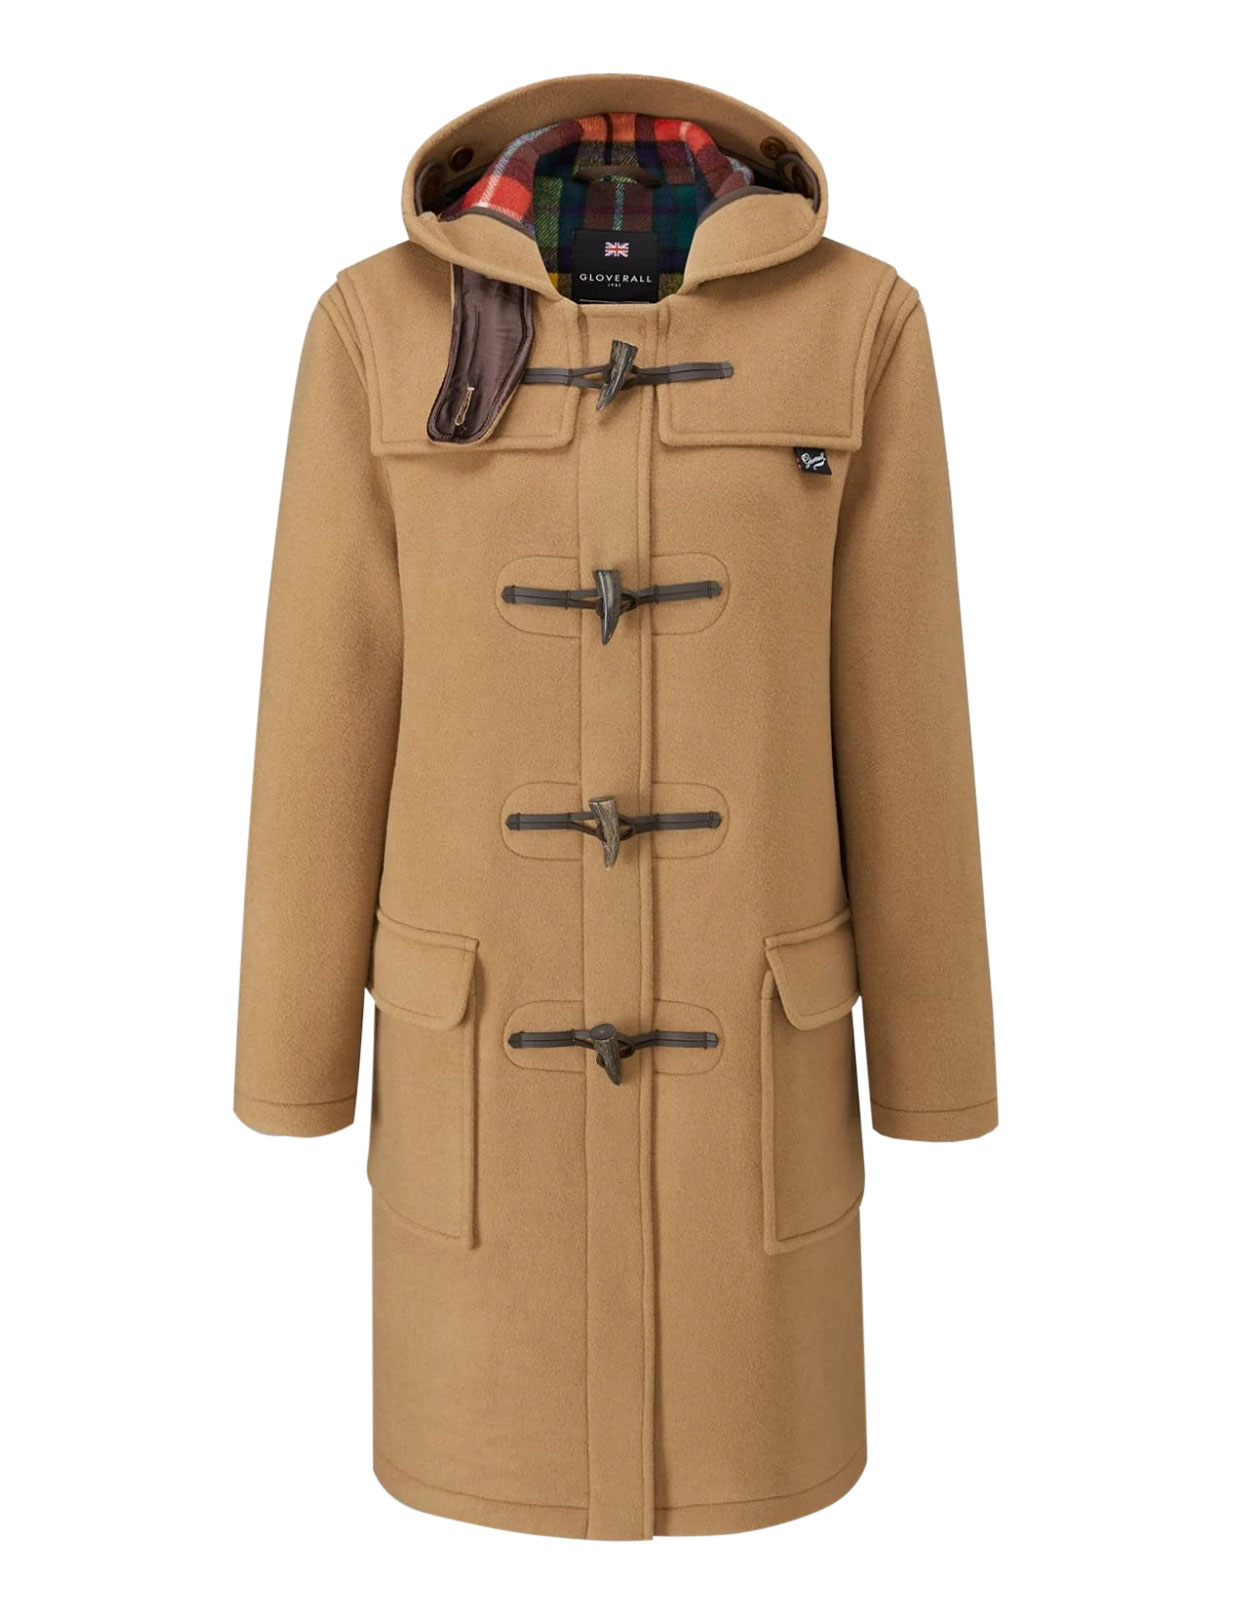 Original Duffel Coat Camel/Buchanan